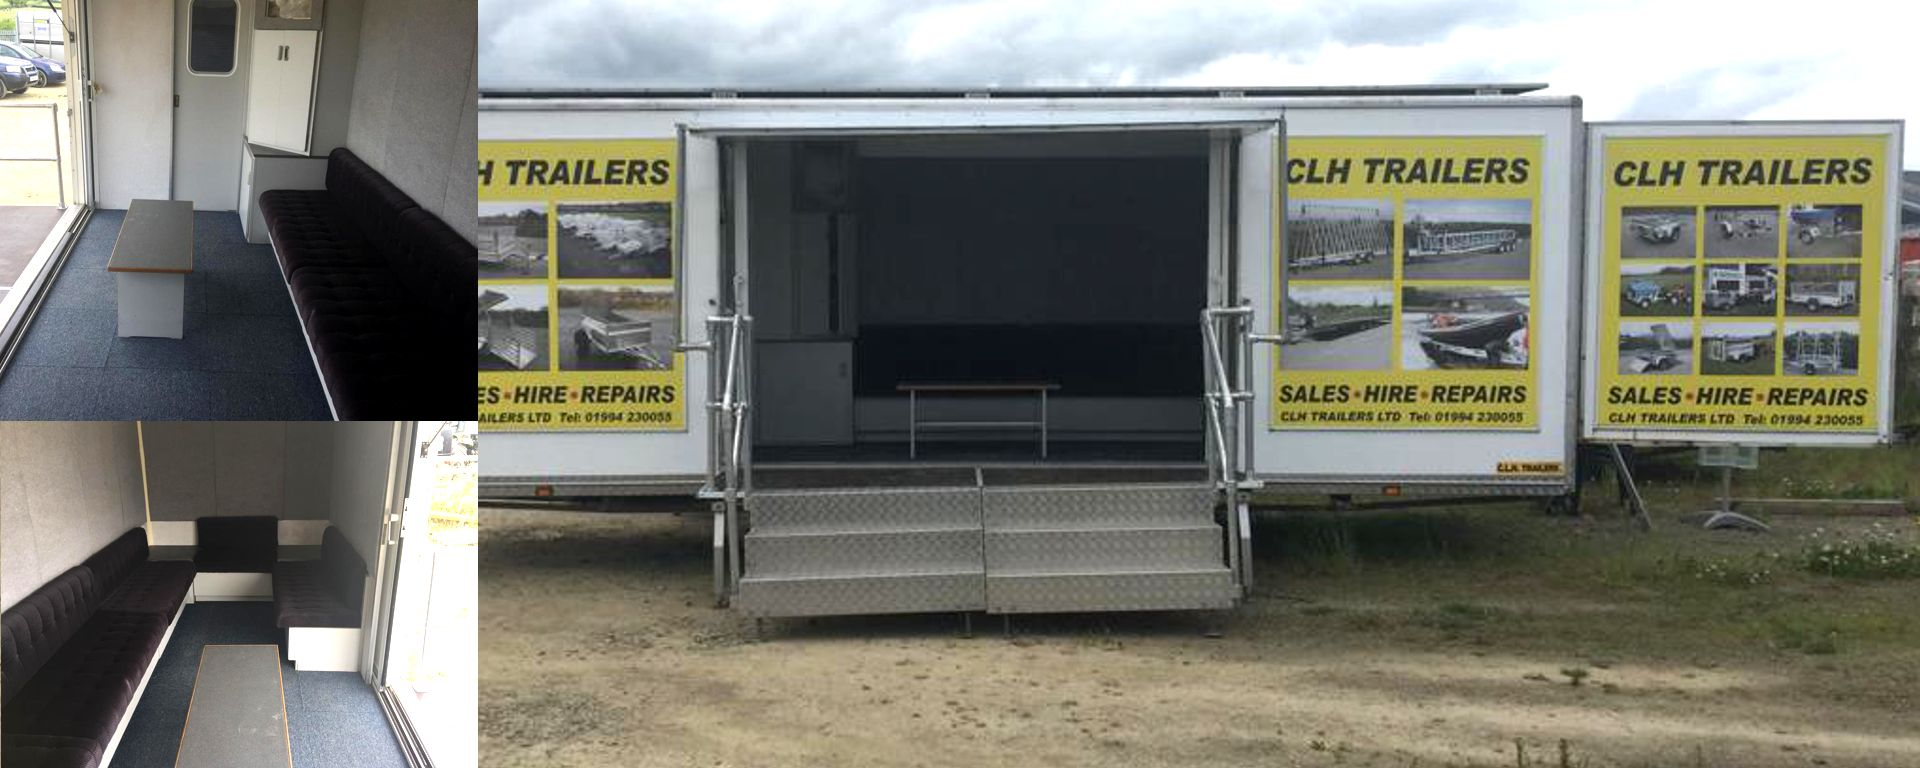 Mobile Event Trailers for Hire in Wales